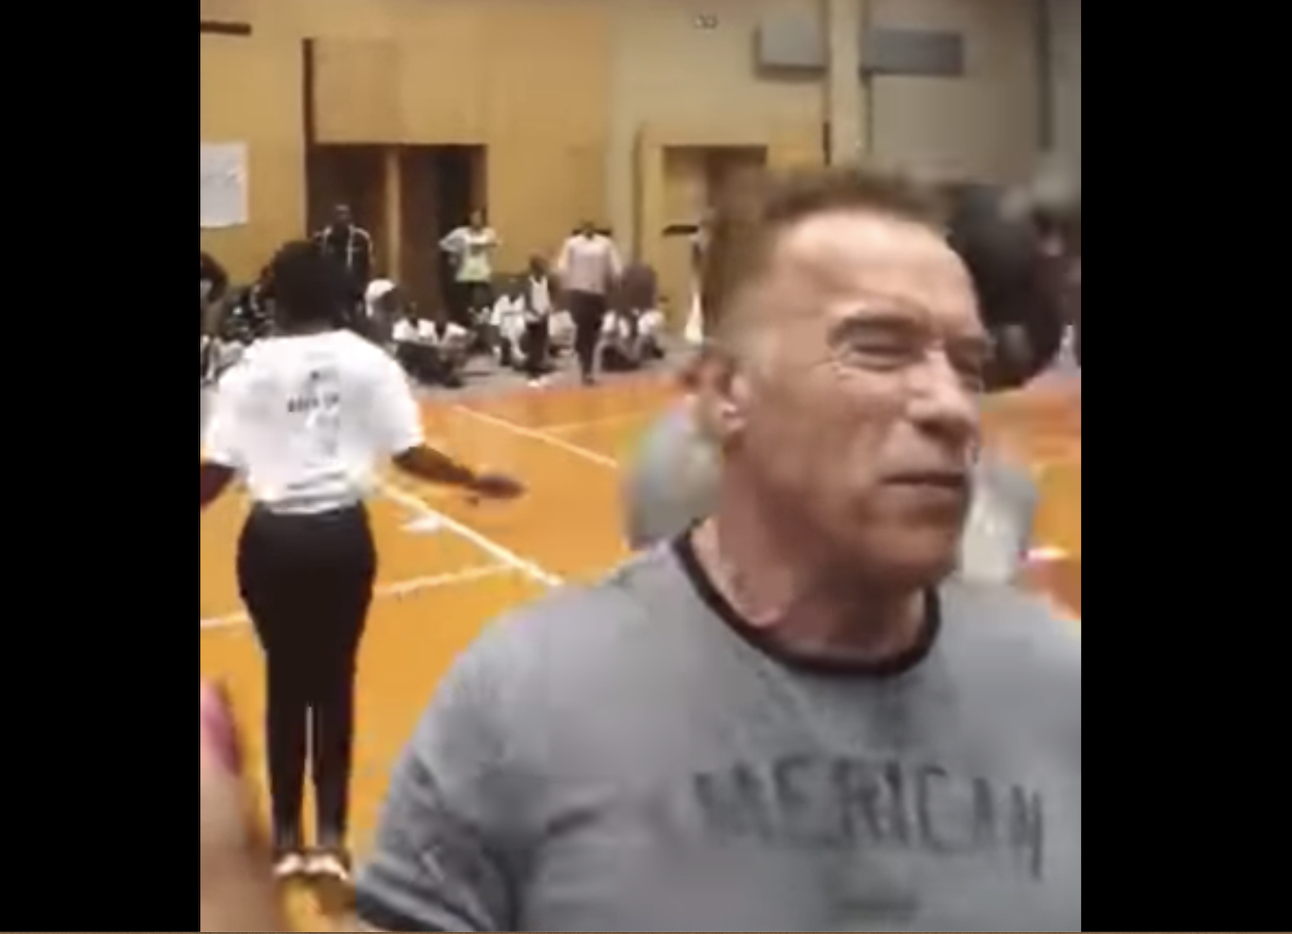 Arnold Schwarzenegger struck by kicking attacker in South Africa (VIDEO)